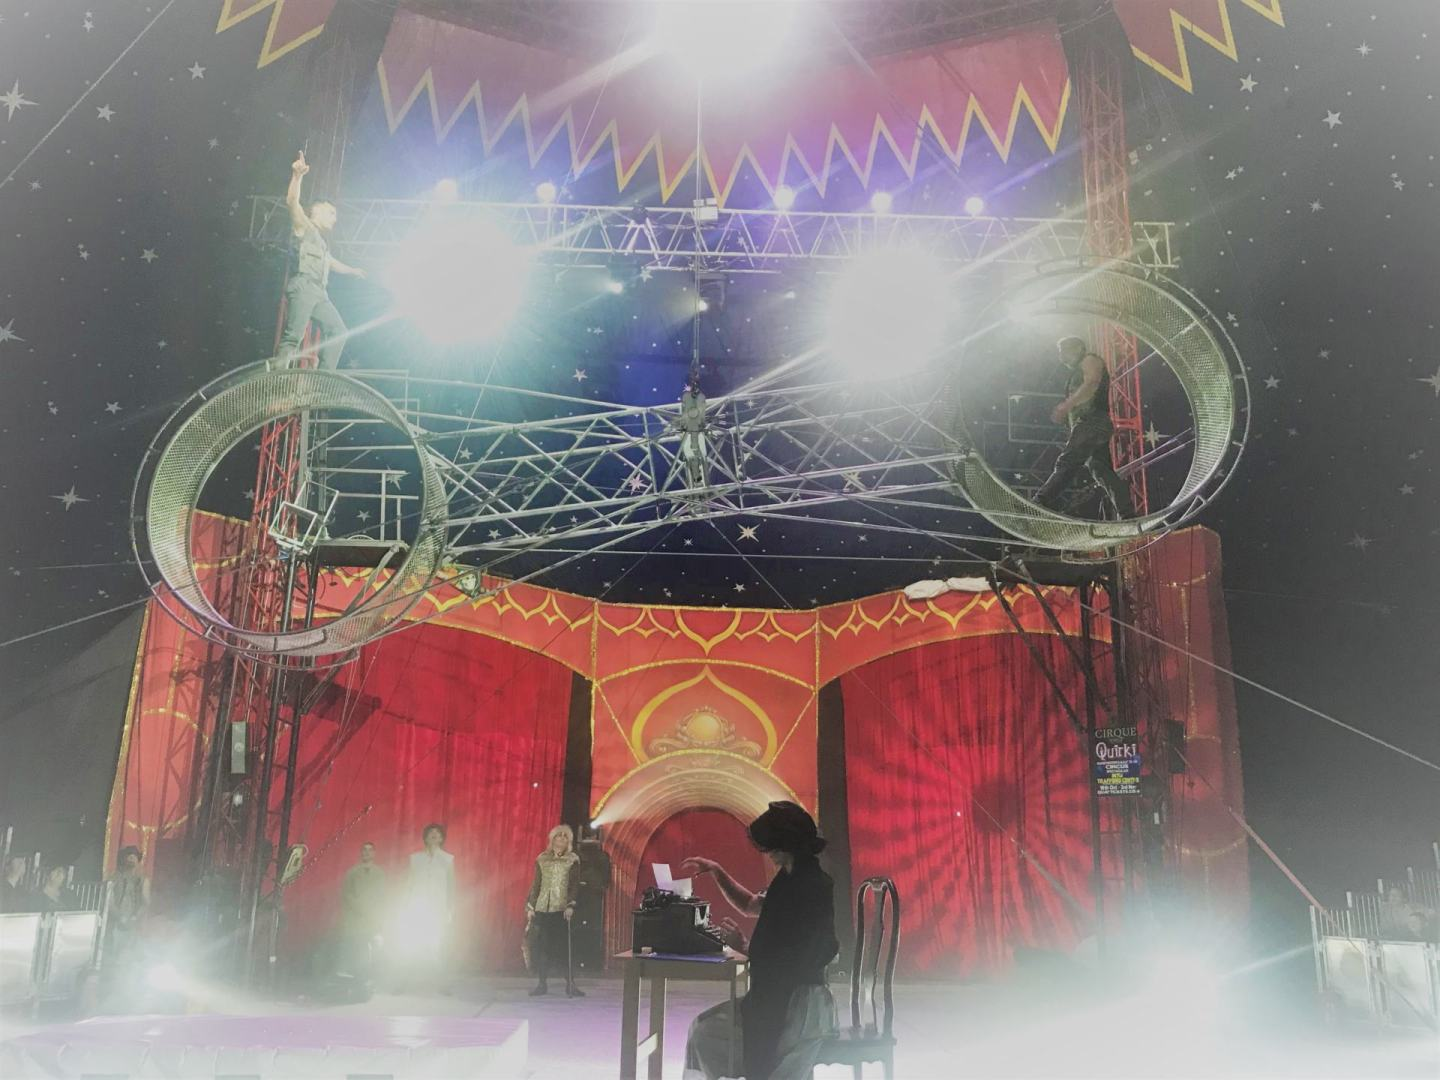 Cirque Surreal – Circus at its Best